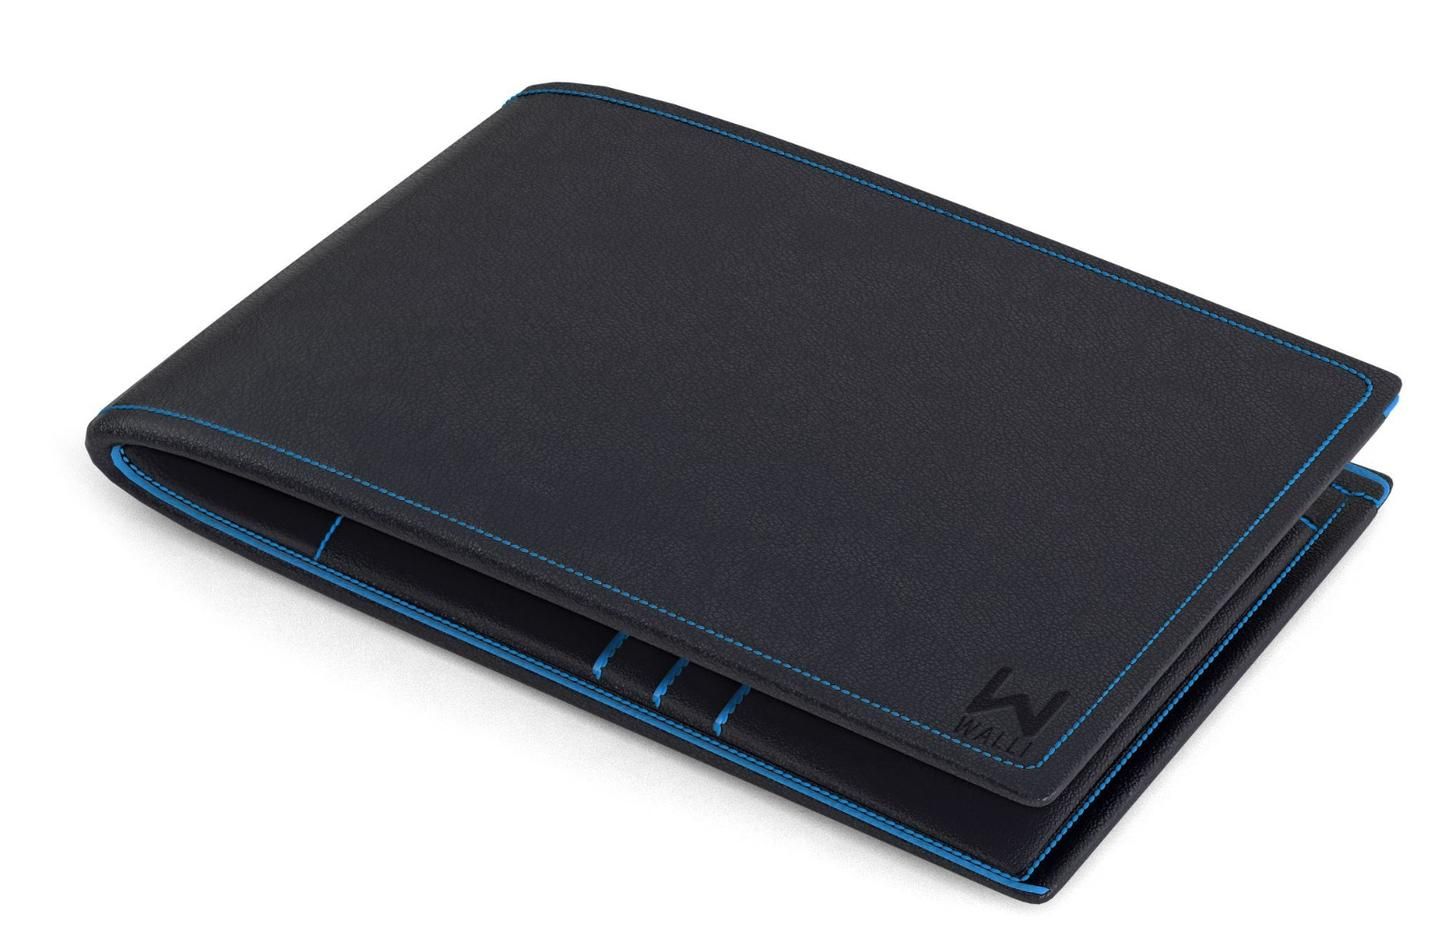 Walli is made from genuine leather and is available in both black and blue